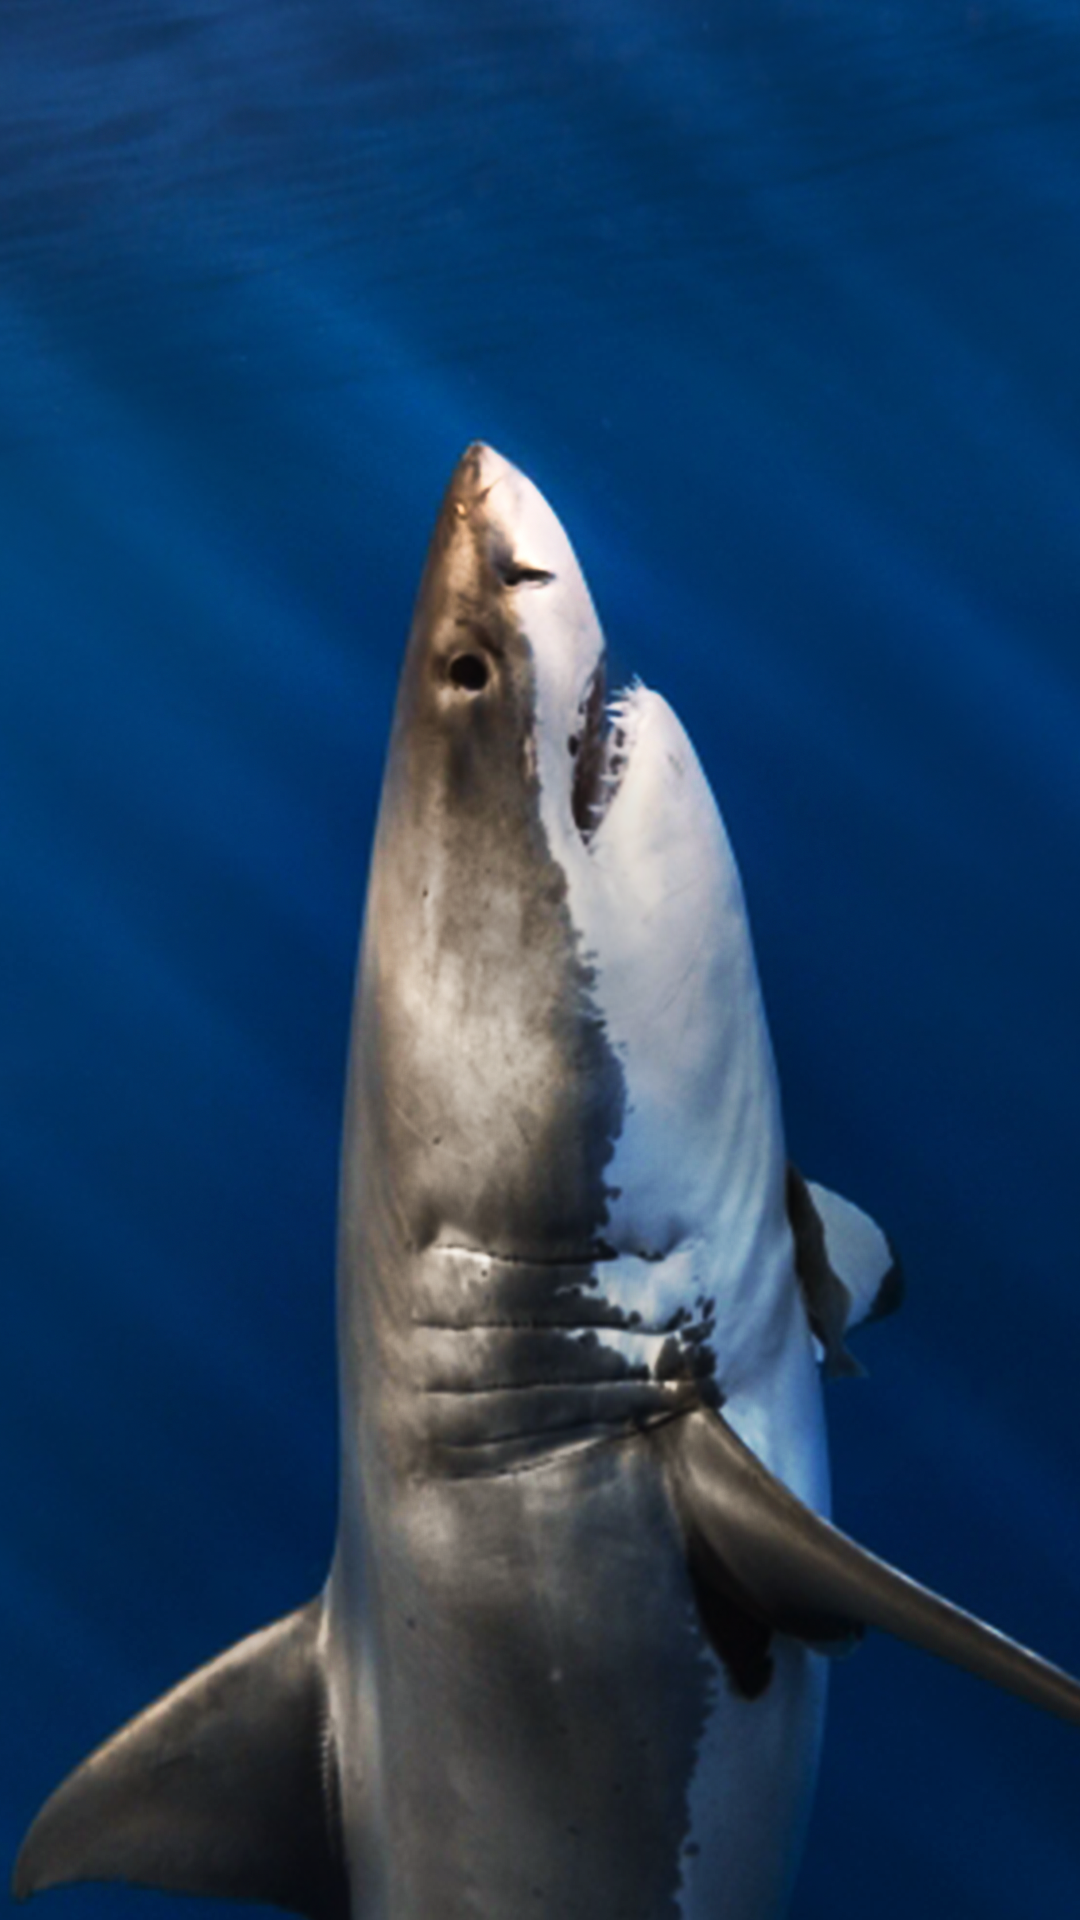 ultra hd great white shark wallpaper for your mobile phone 0402